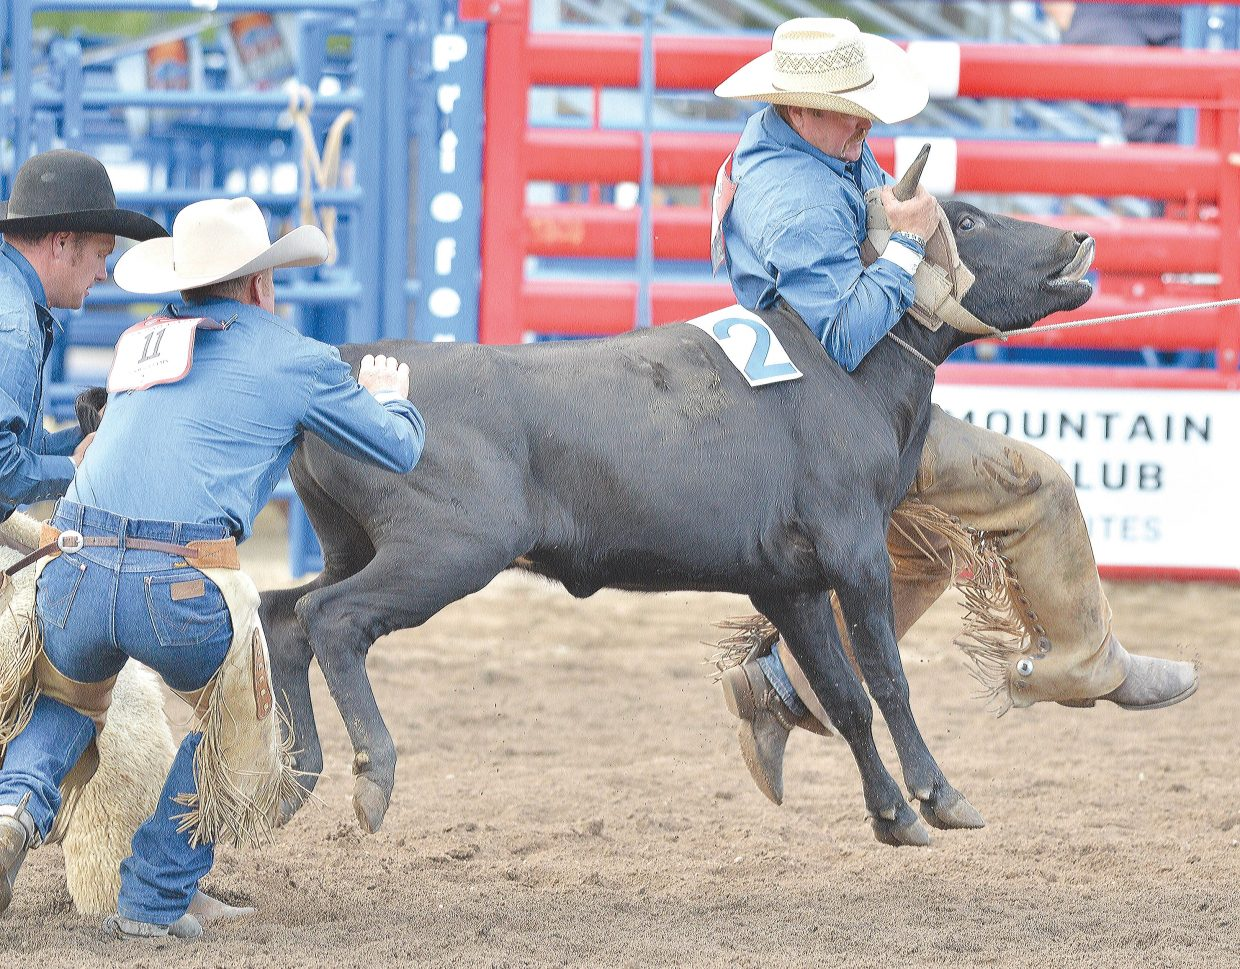 Frank Thompson and his teammates with the Four Three Land and Cattle/FX Bar team wrestles an uncooperative steer during Thursday night's Working Ranch Cowboys Association-sanctioned ranch rodeo at the Brent Romick Rodeo Arena. Ten professional teams competed in the event and entertained a good-sized crowd in an event that kicked off the Fourth of July celebration in Steamboat Springs.